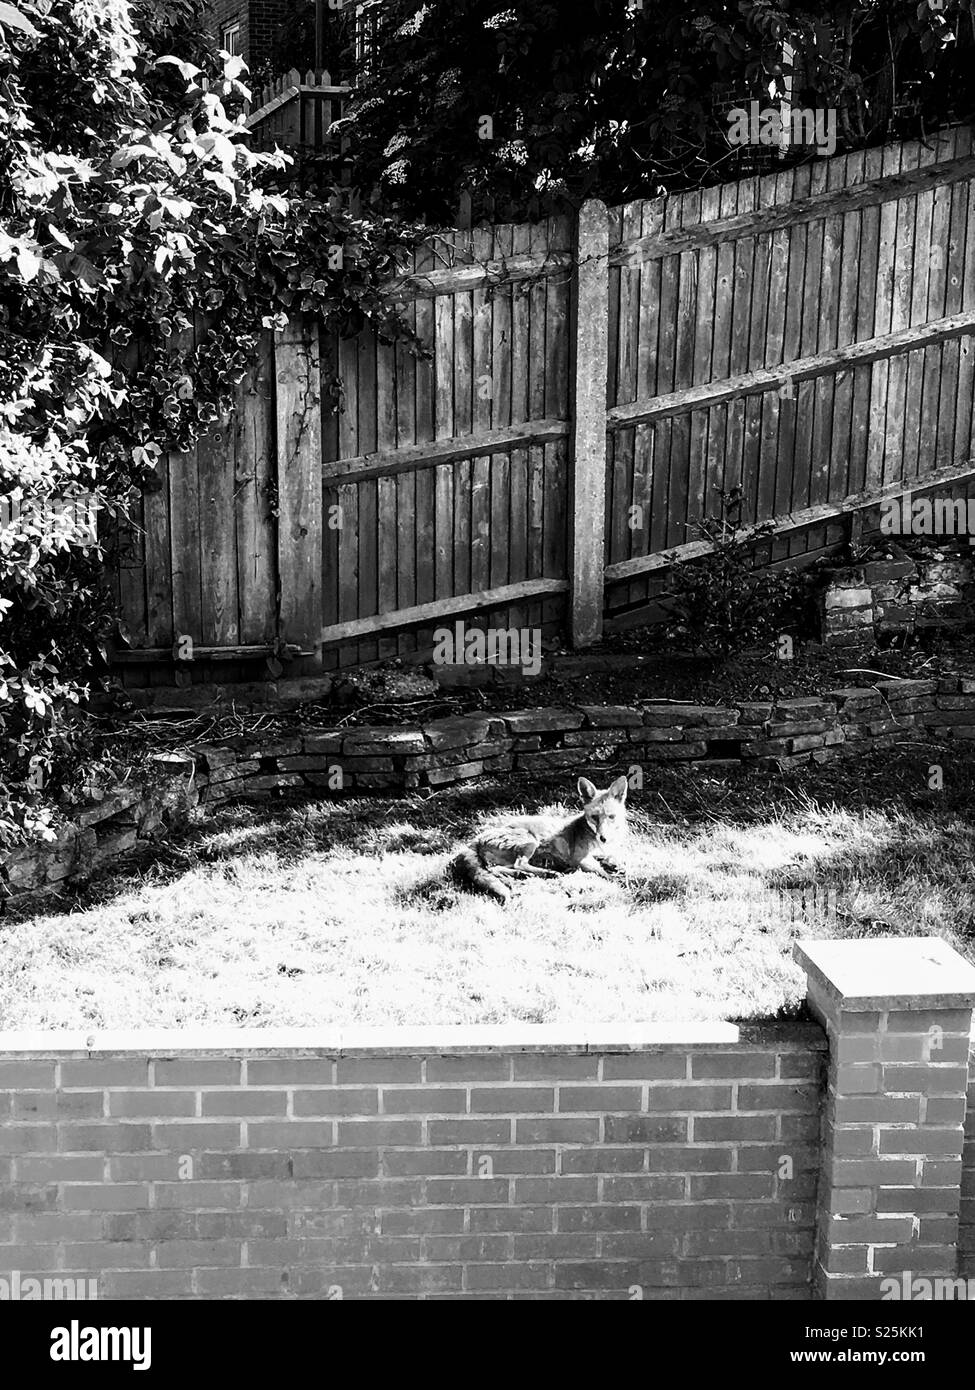 Urban Fox in Black and White Environment - Stock Image